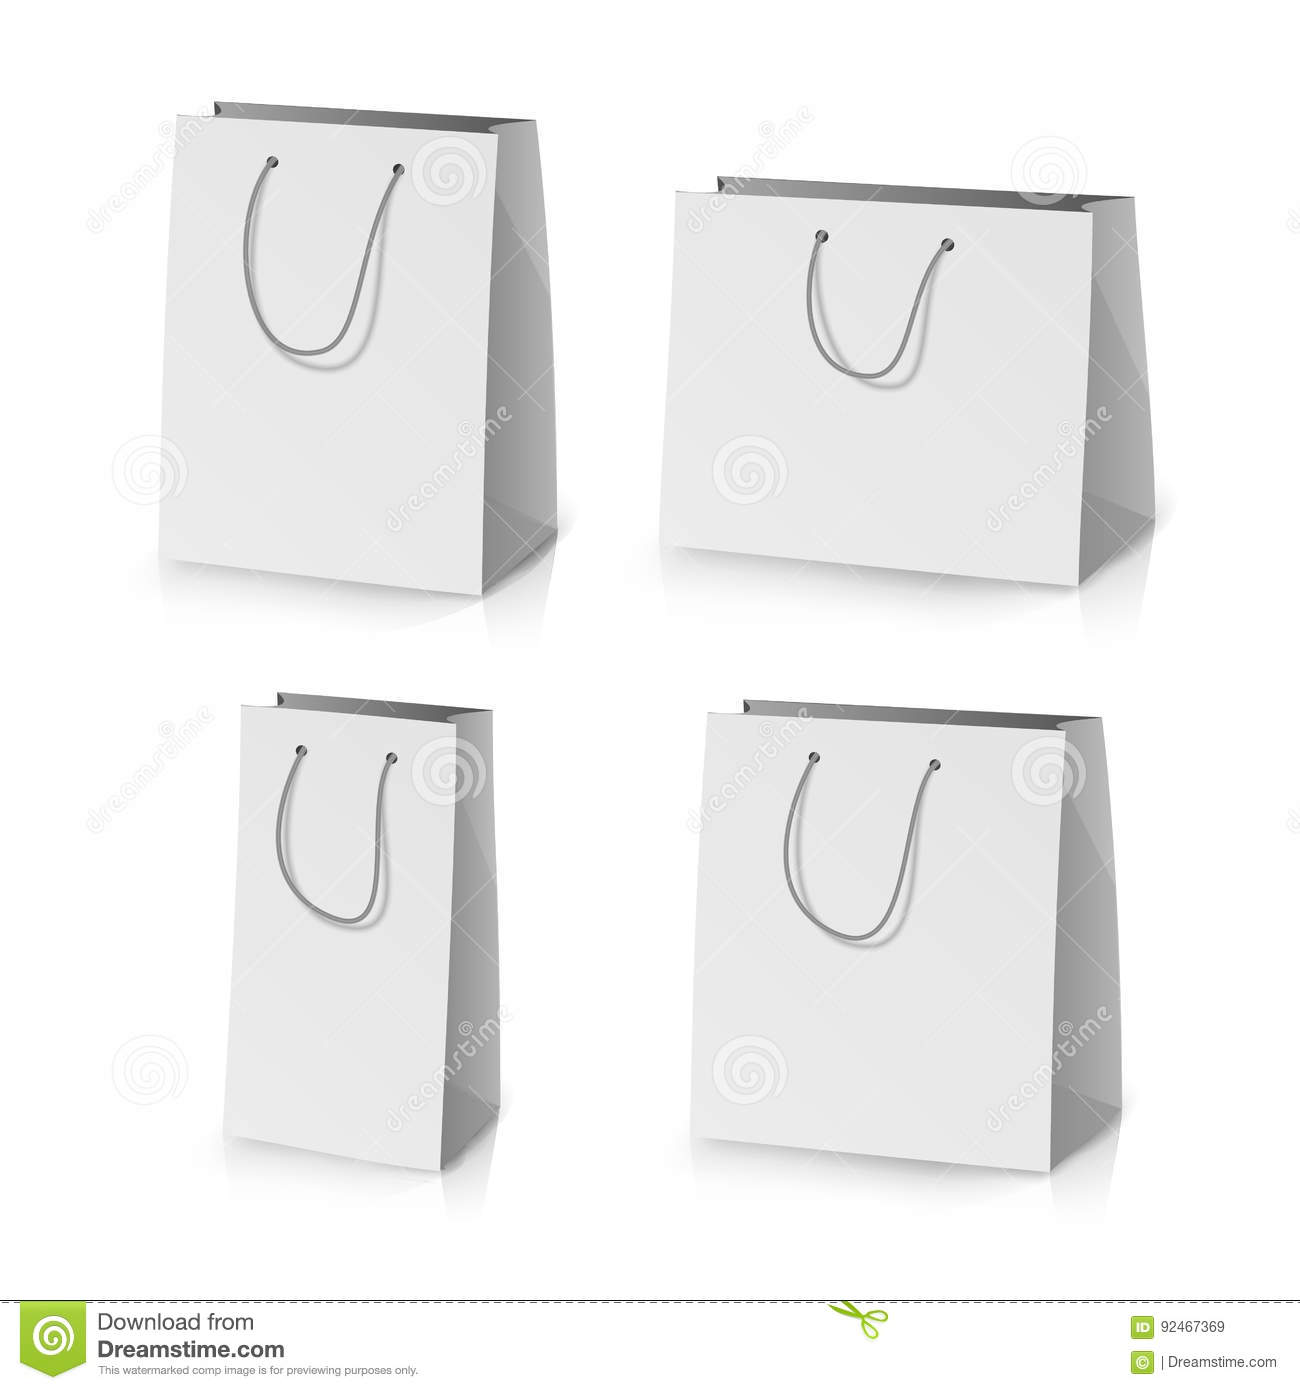 Blank Paper Template | Blank Paper Bag Template Vector Realistic Gift Bag Illustration